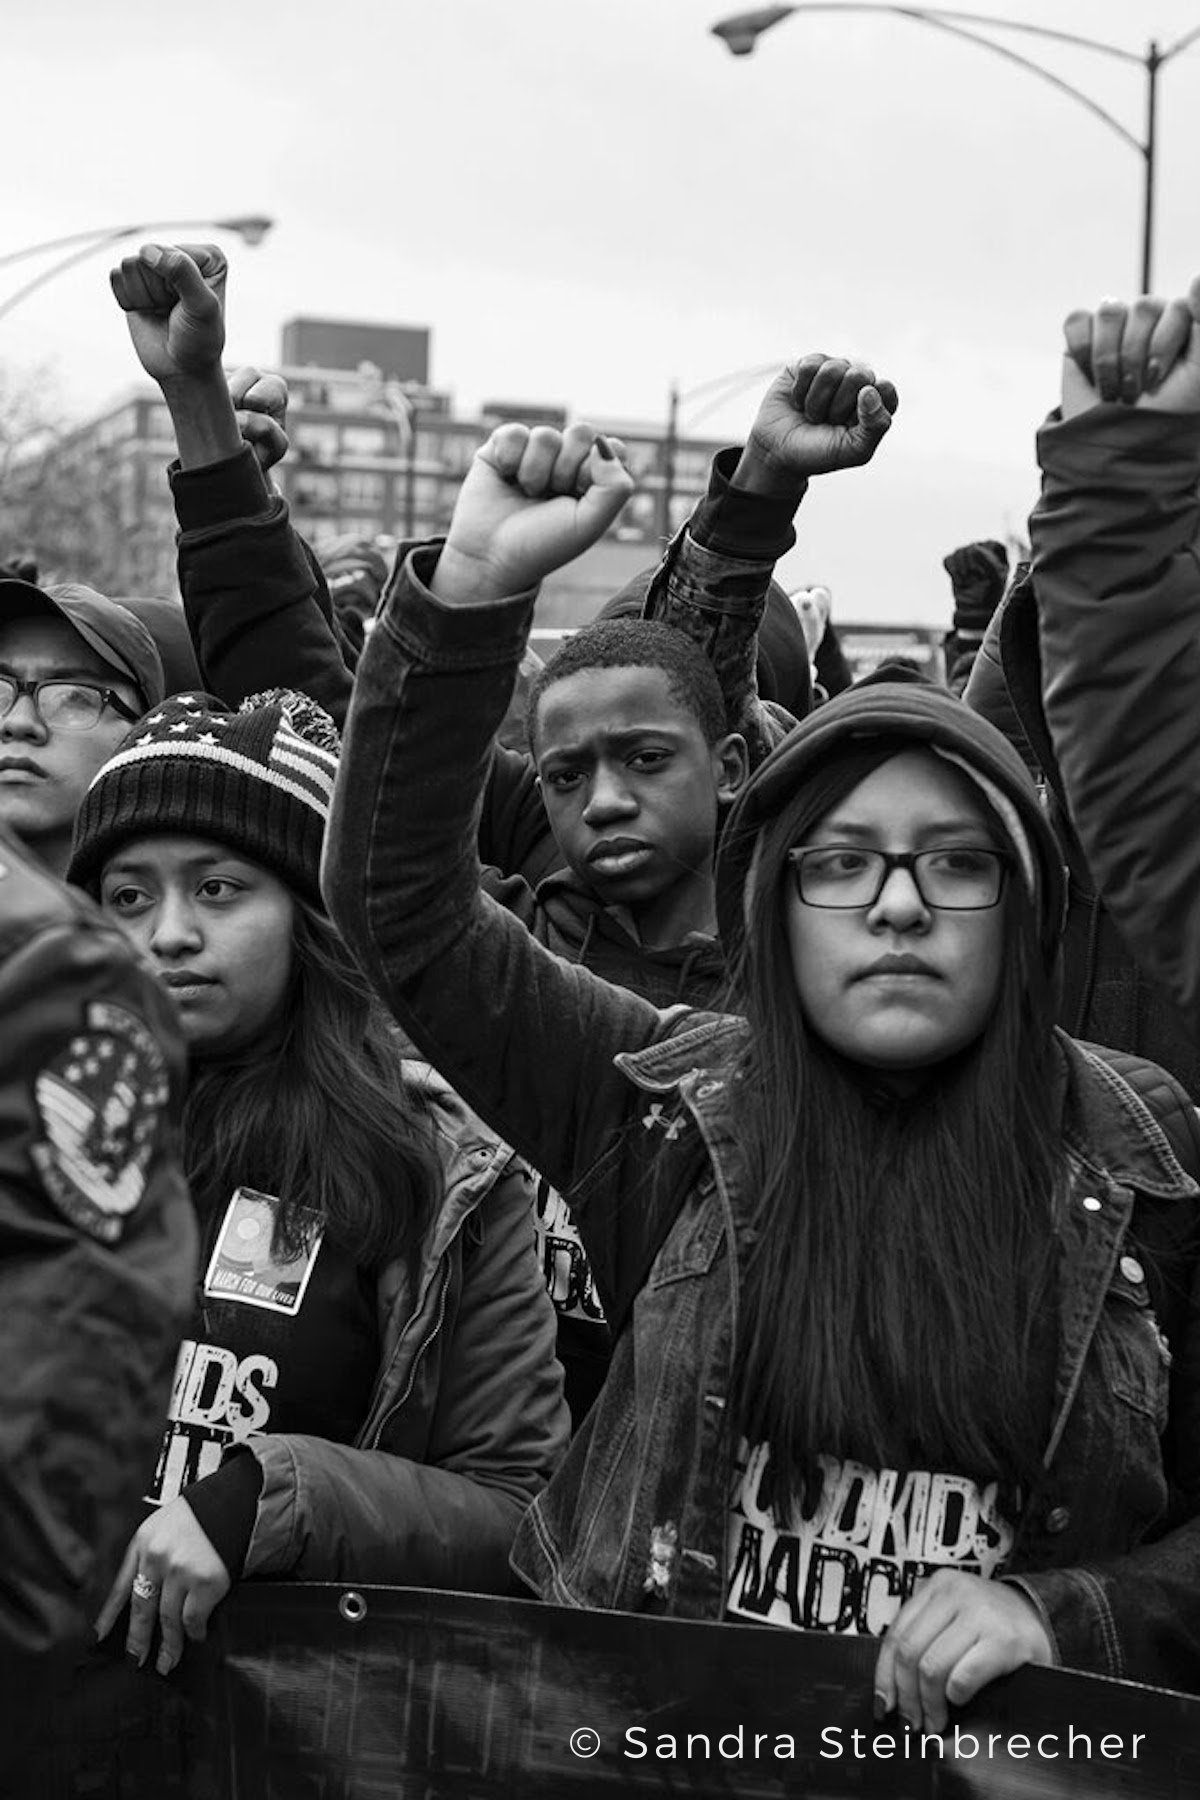 'Frontline, March for Our Lives, Chicago,' by Sandra Steinbrecher